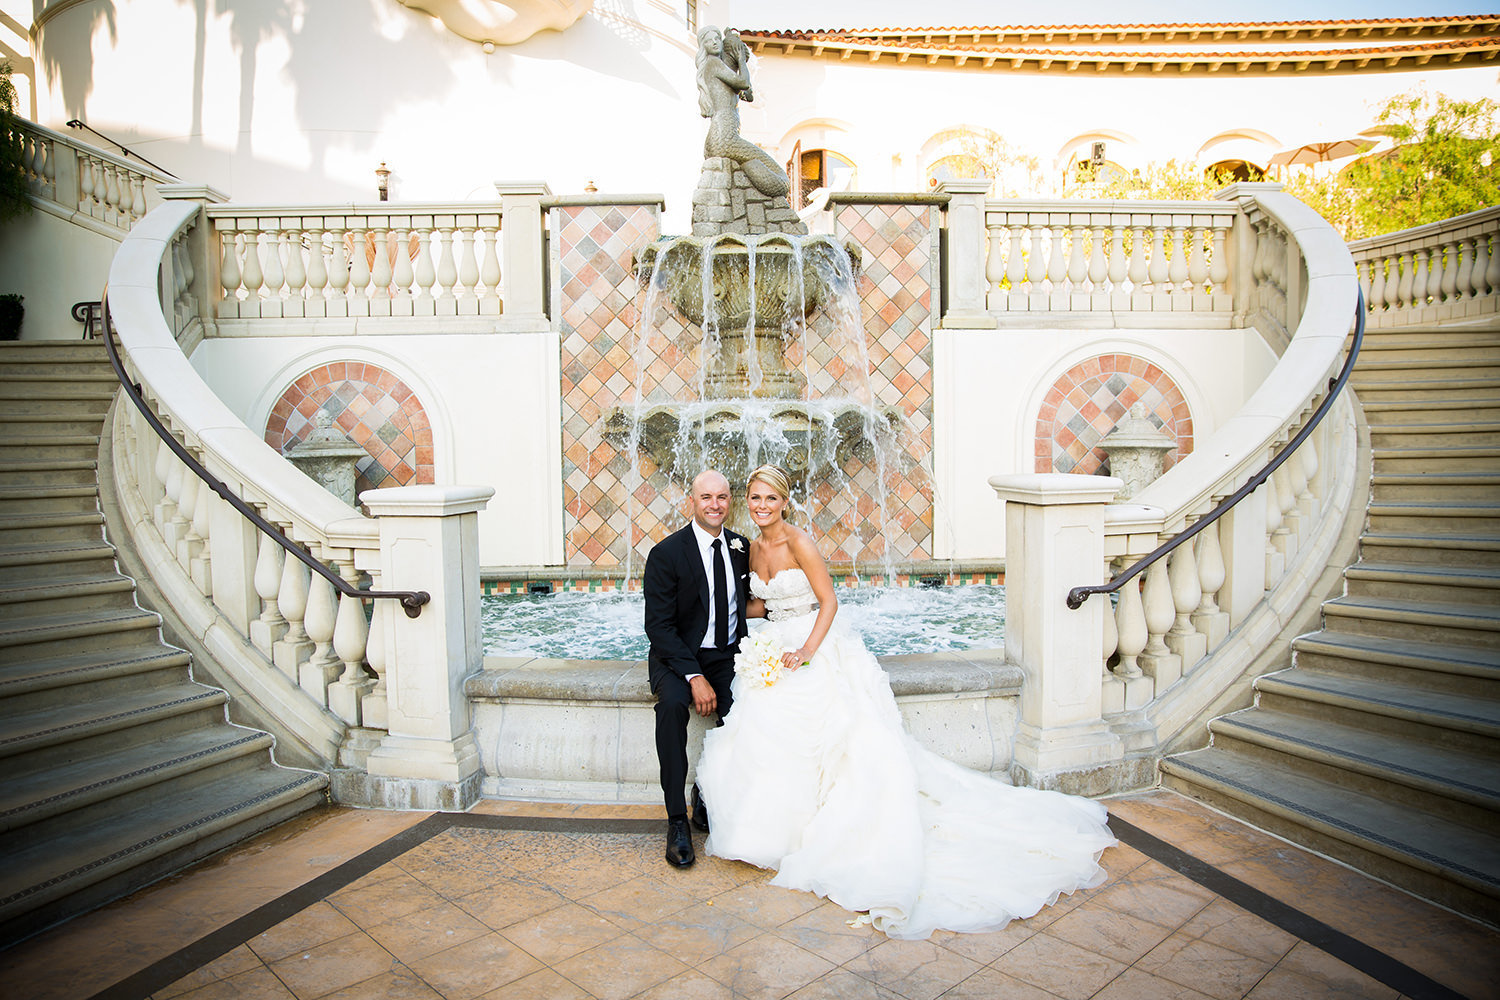 The water fountain between the staircases sets the perfect scene for this romantic portrait